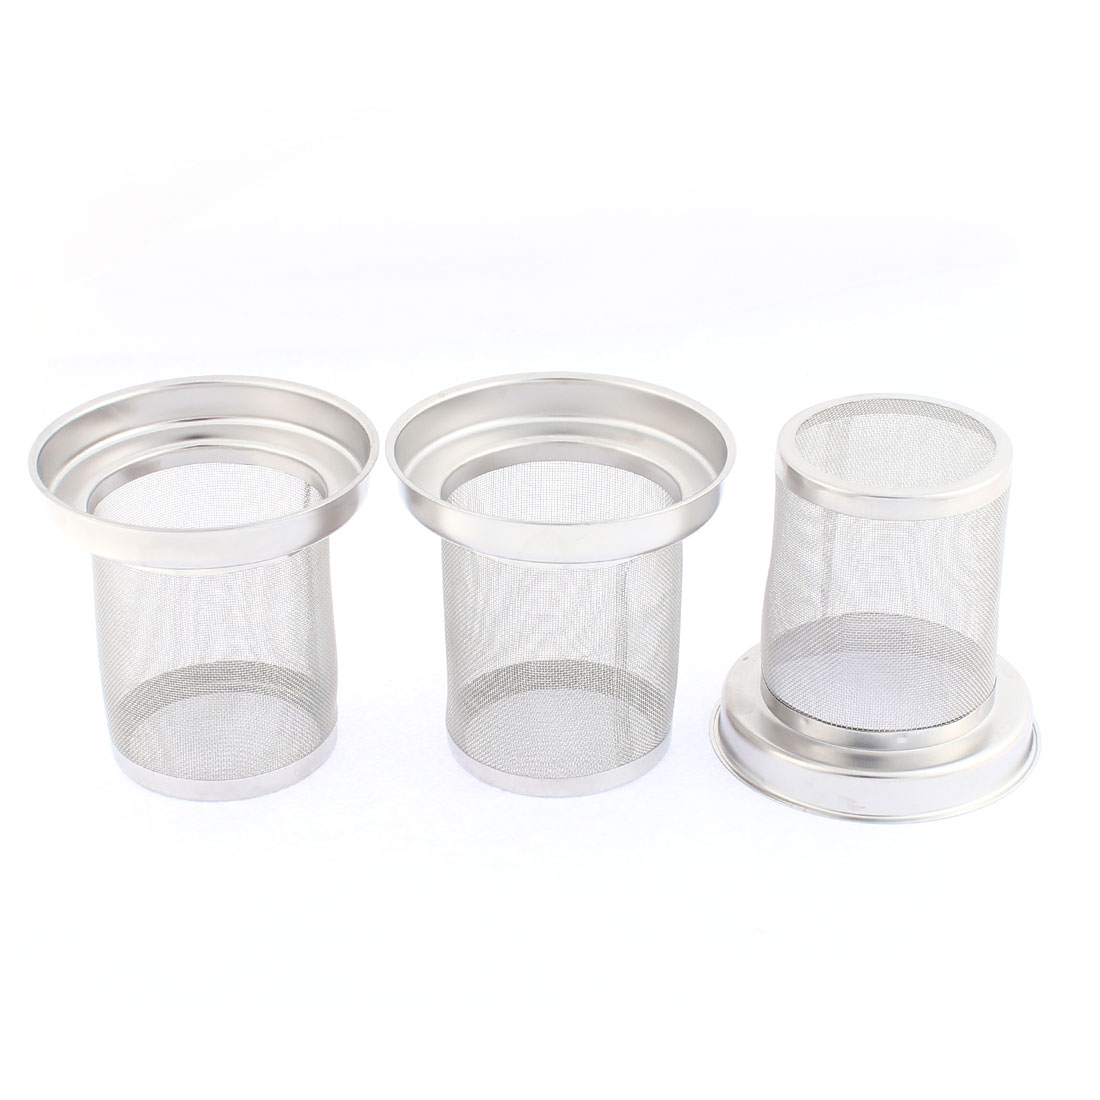 Stainless Steel Tea Leaf Spice Mesh Infuser Filter Strainer 3PCS